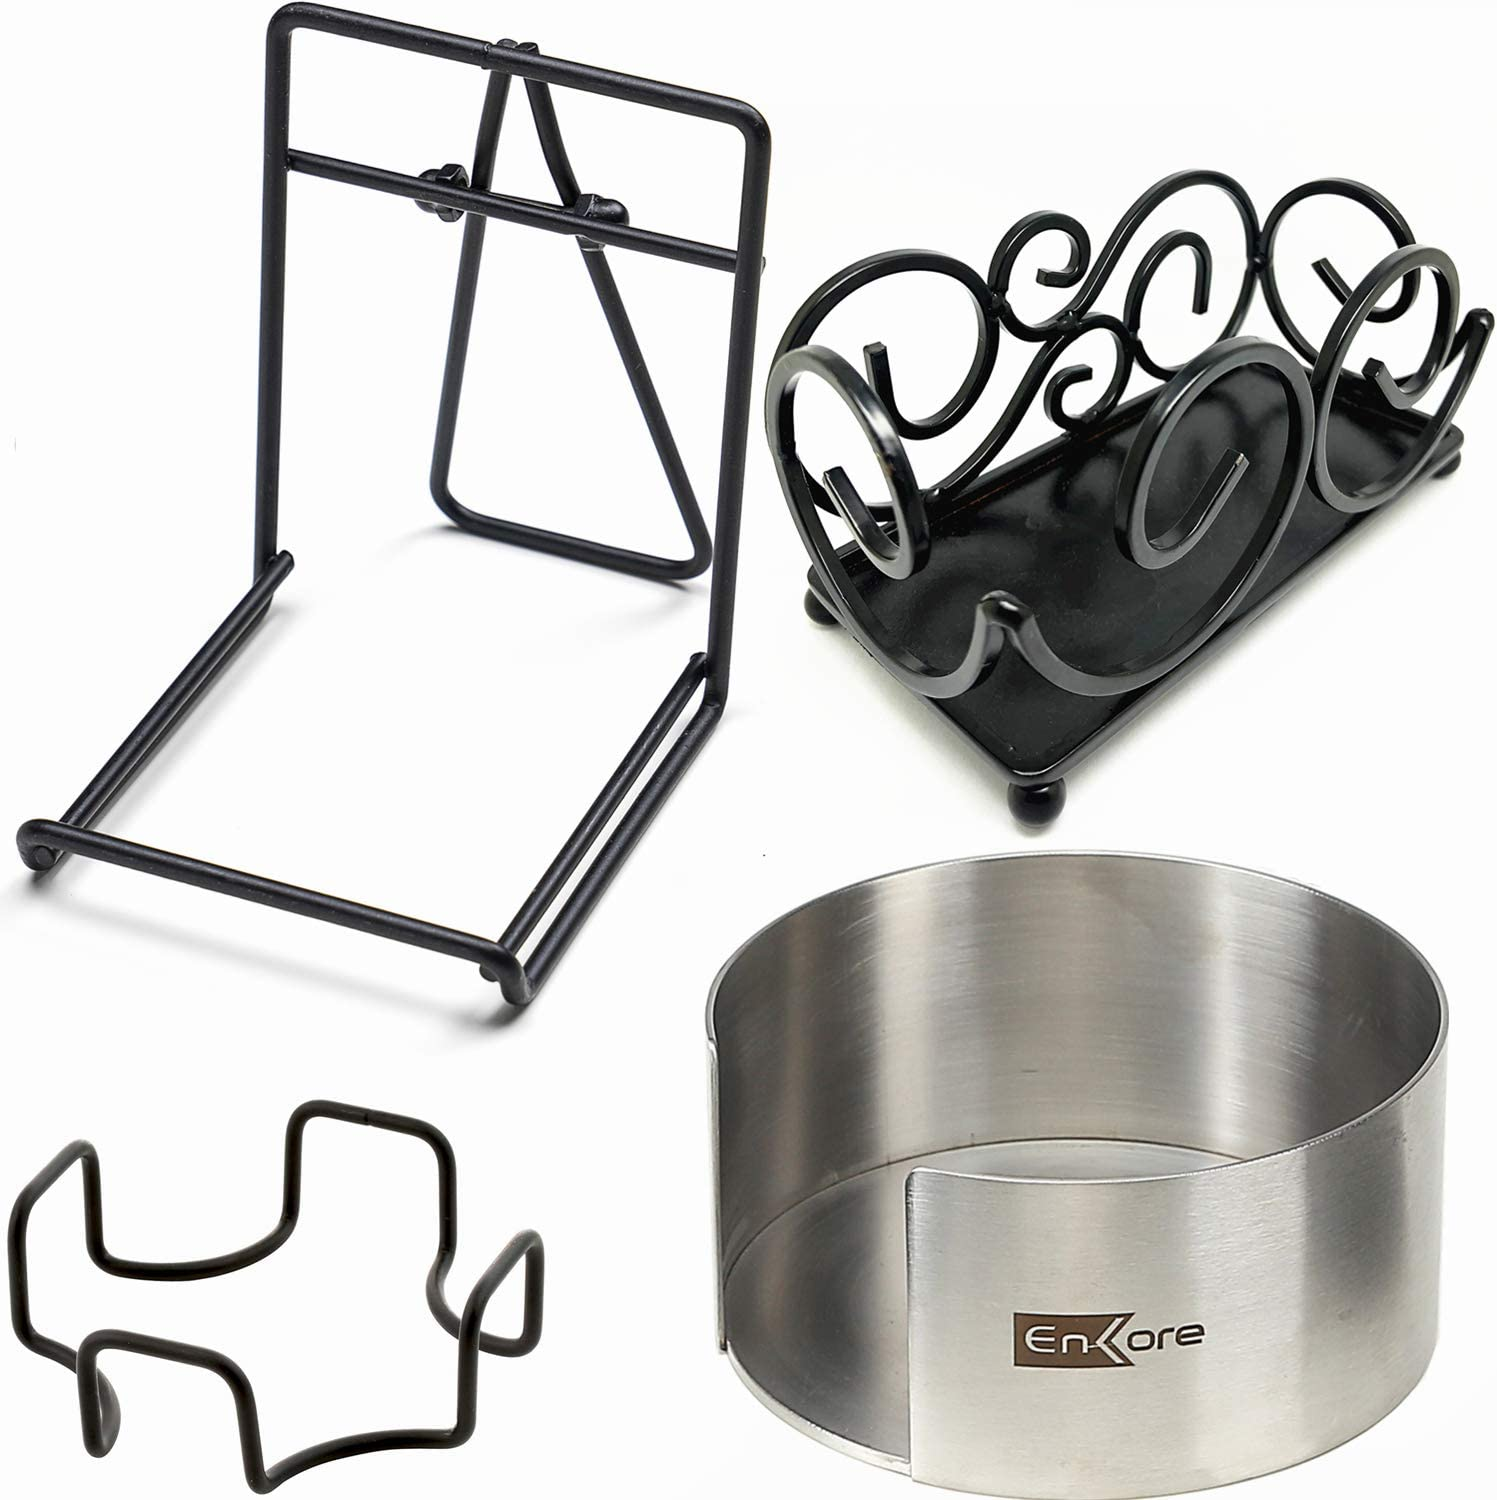 Coaster Stands & Holders Bundle - 2 Display stands PLUS 2 Holders (1 Square 1 Round) - All Designed to Fit ENKORE Coasters or Cup Mats Up to 4 1/4 Inch Size, Various Shapes For Round or Square Coaster